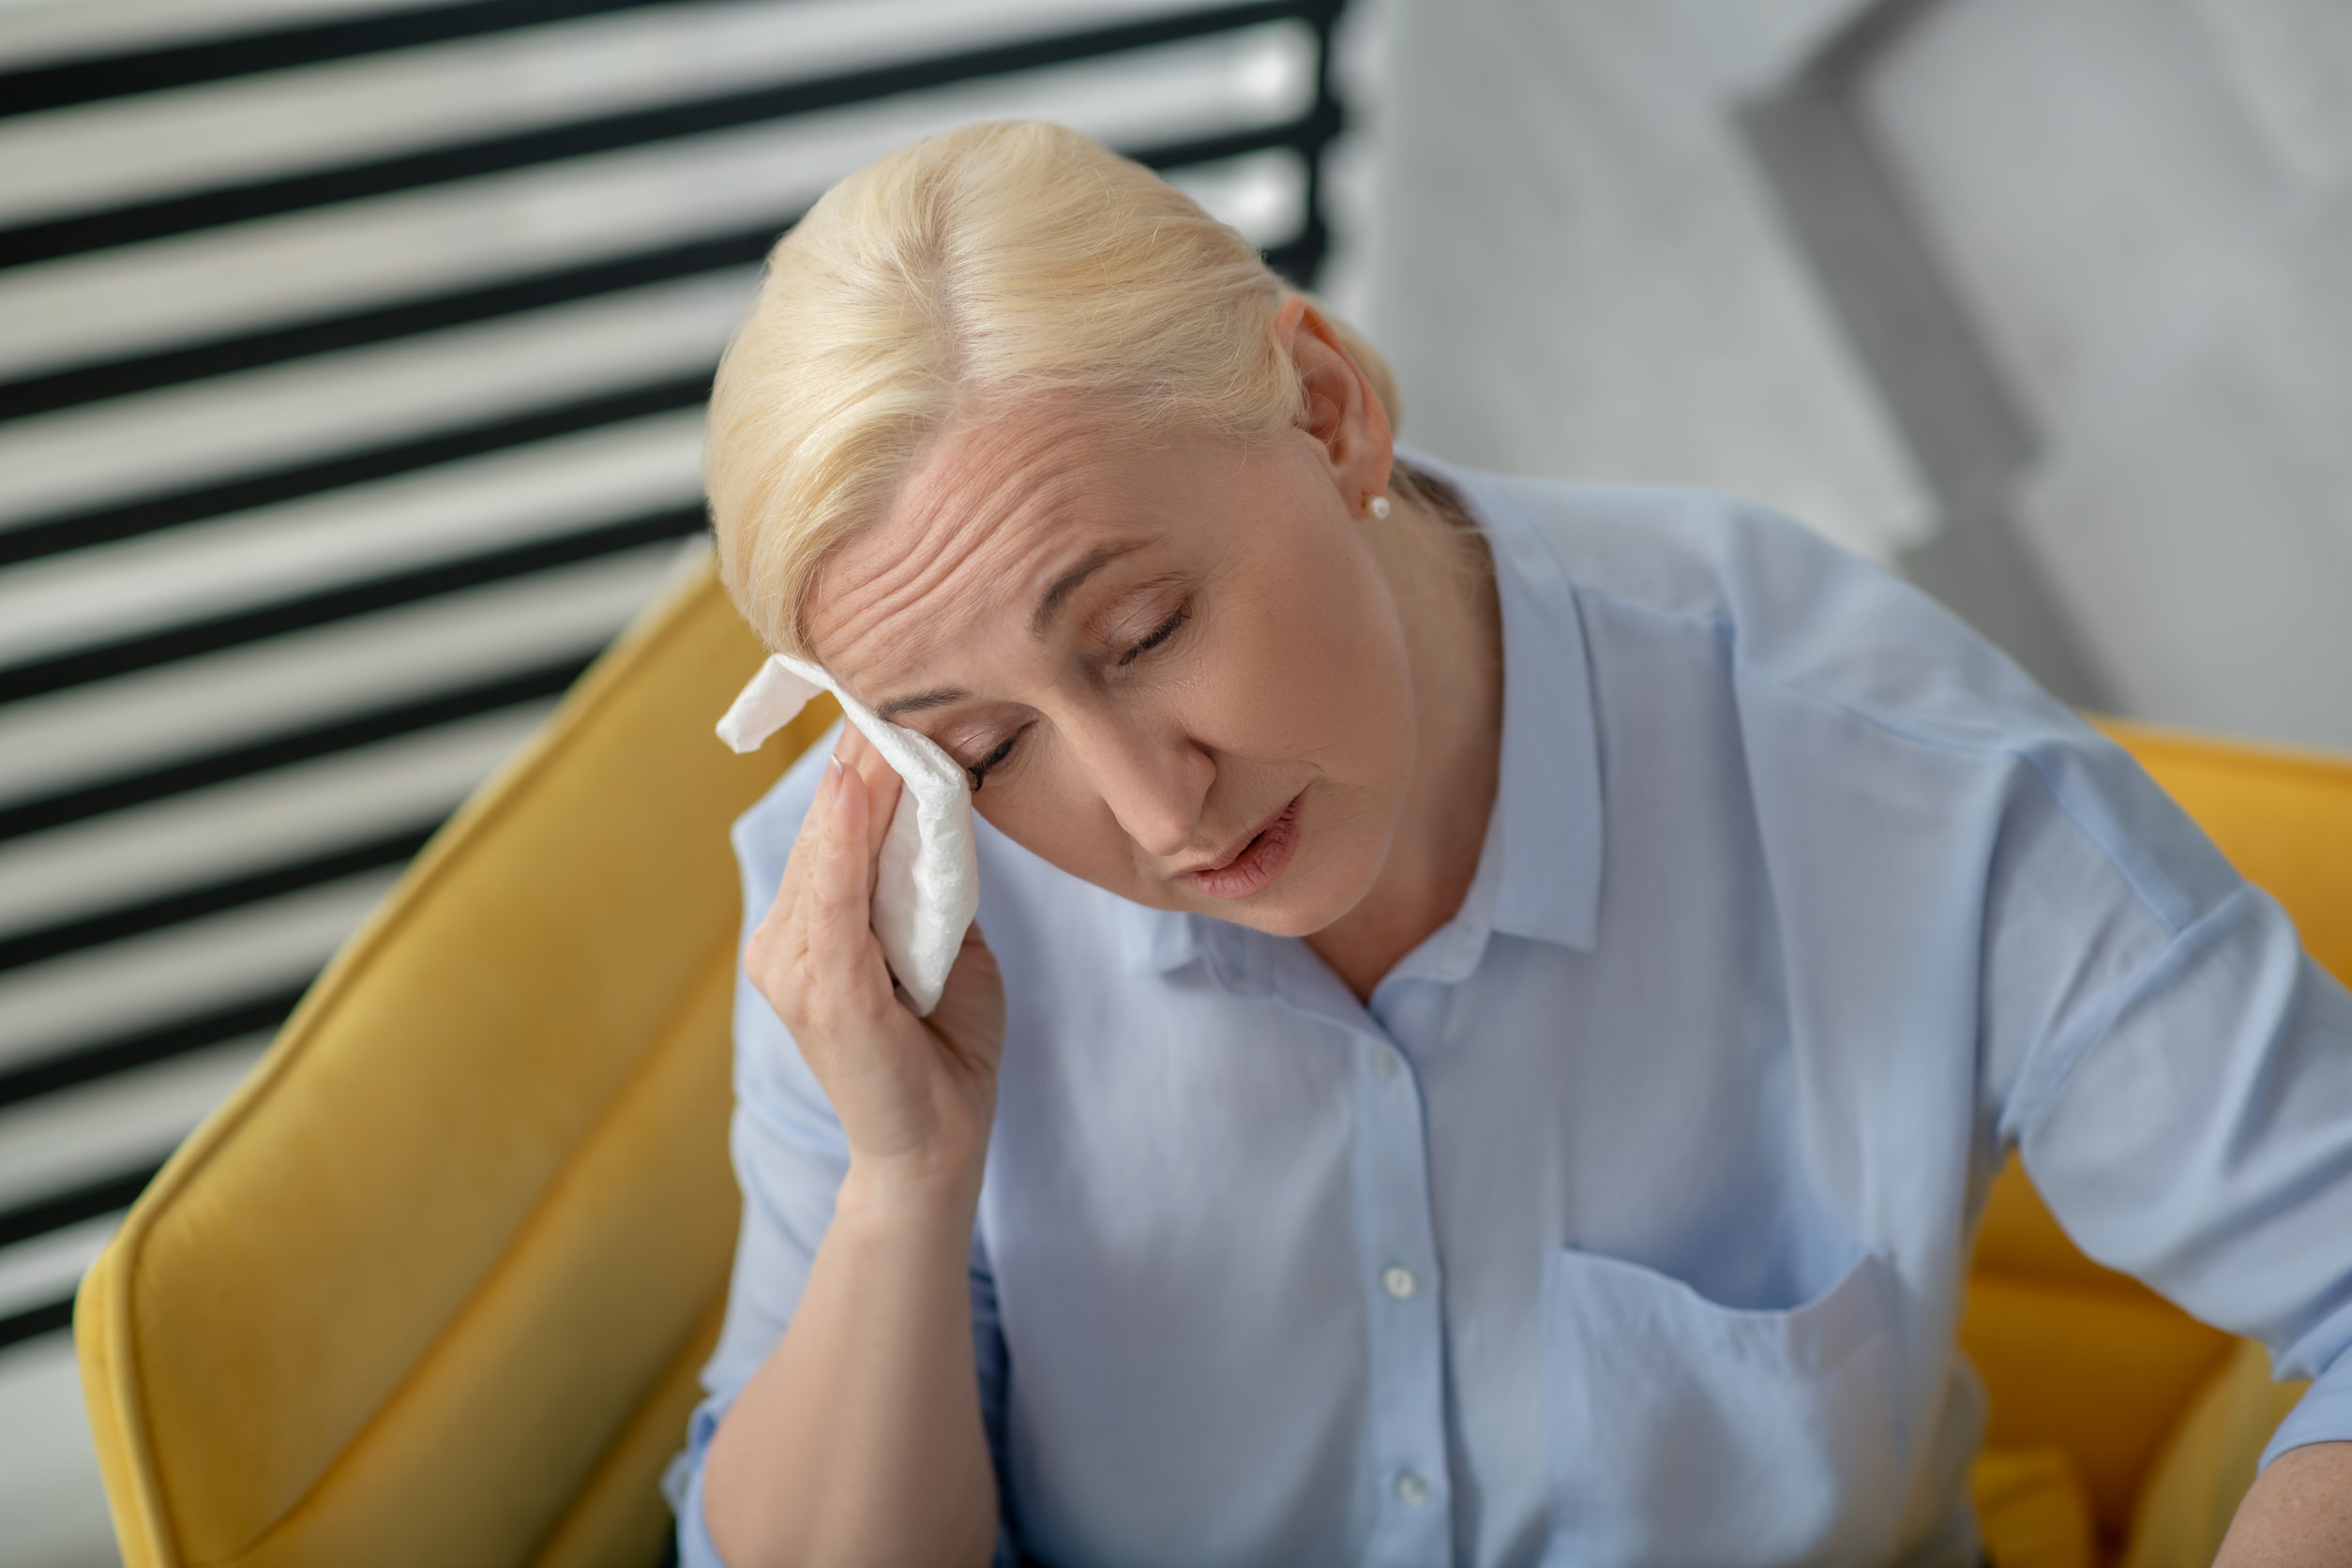 Signs You May Need Hormone Replacement Therapy